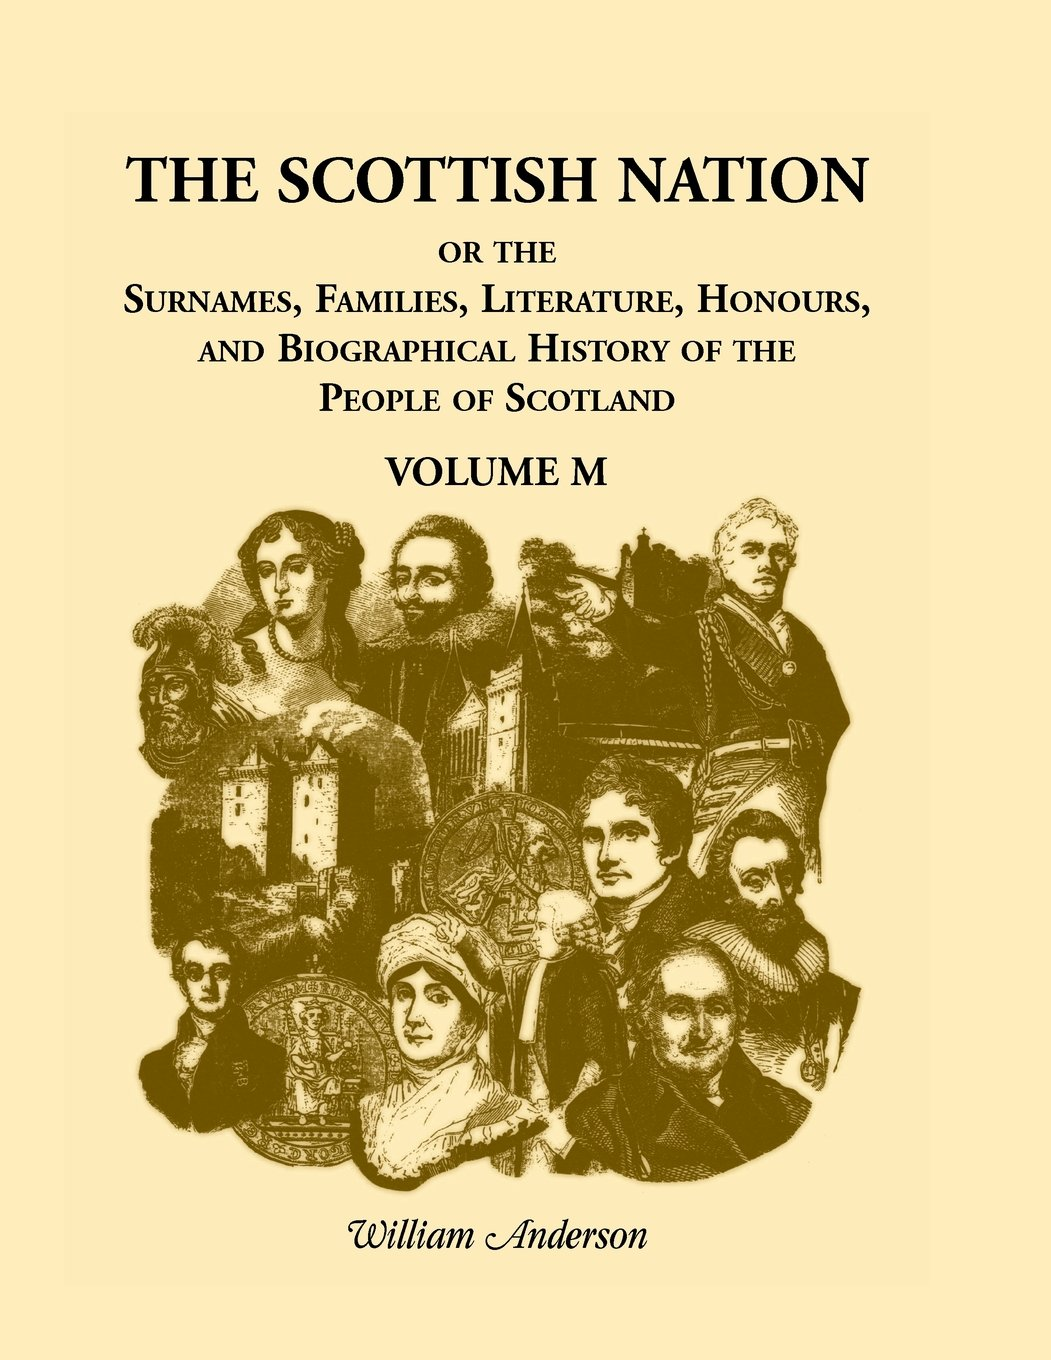 Download The Scottish Nation; Or the Surnames, Families, Literature, Honours, and Biographical History of the People of Scotland: Volume M ebook